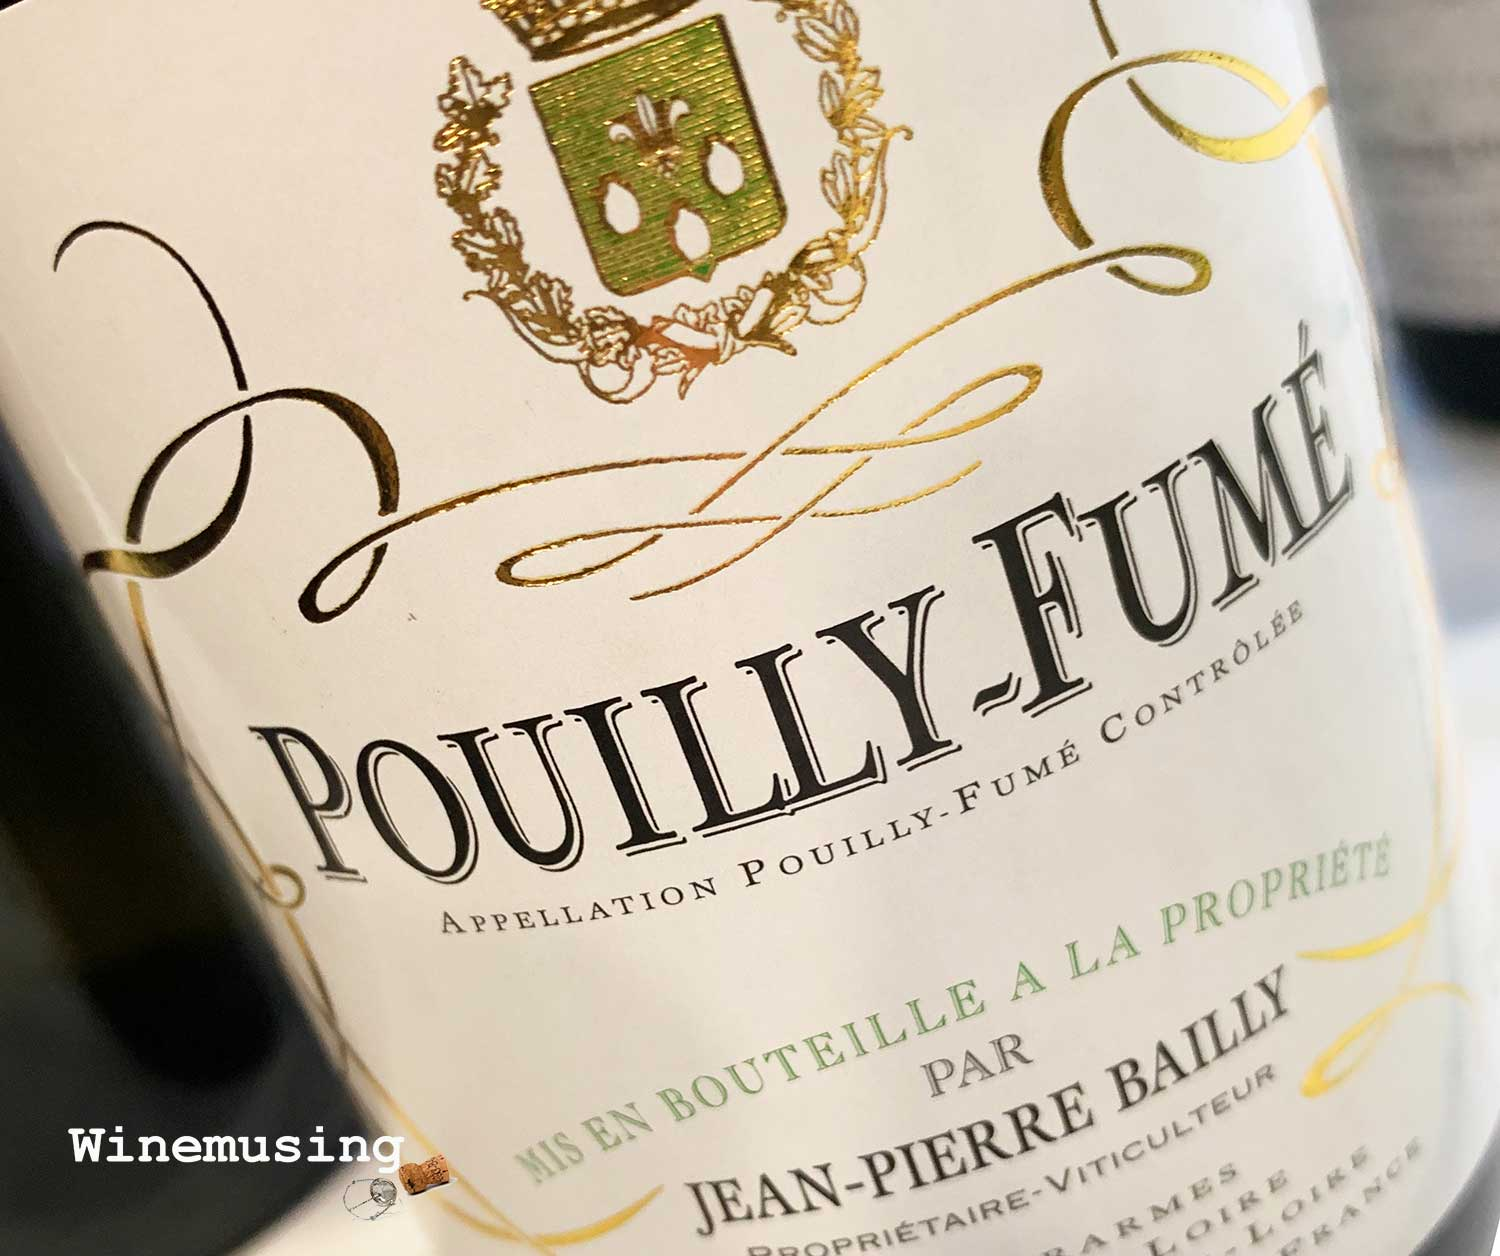 Domaine Jean-Pierre Bailly Pouilly Fumé